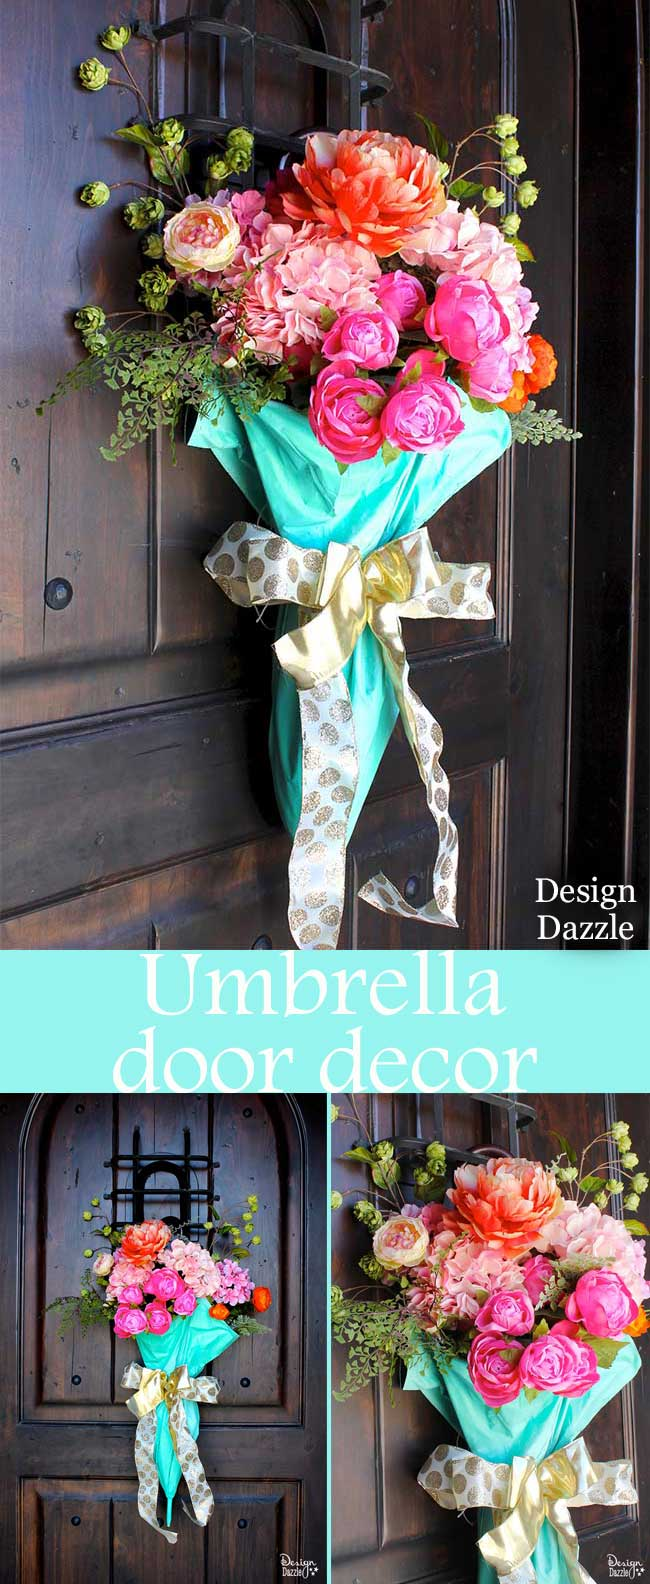 Umbrella Spring Door Decor Design Dazzle